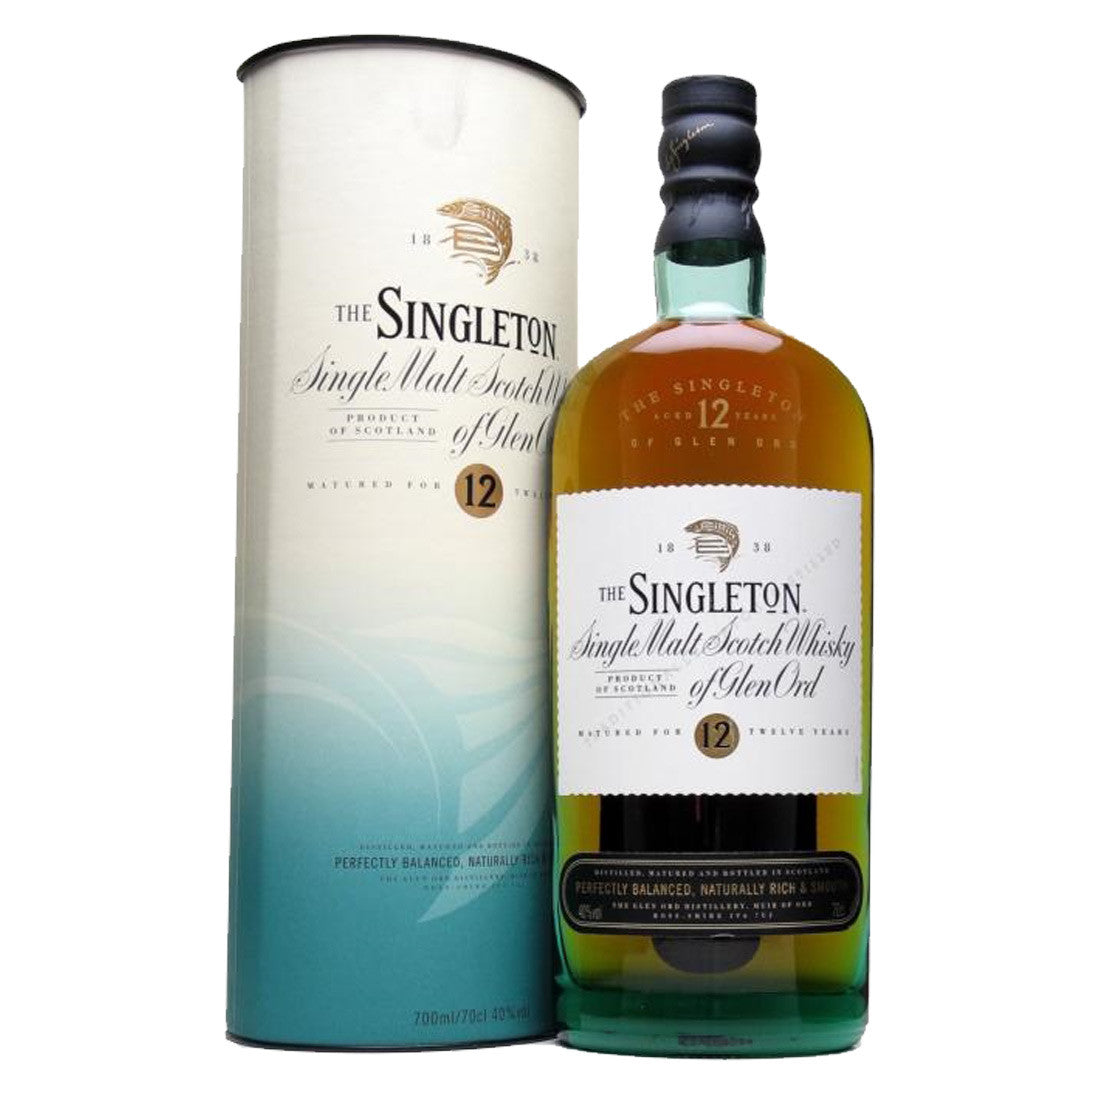 Singleton Of Glen Ord 12 Years Highland Single Malt Scotch Whisky - 700ml Whiskey - Bevtools Bar and Beverage Tools | Alcohol and Liquor Delivery Makati, Metro Manila, Philippines